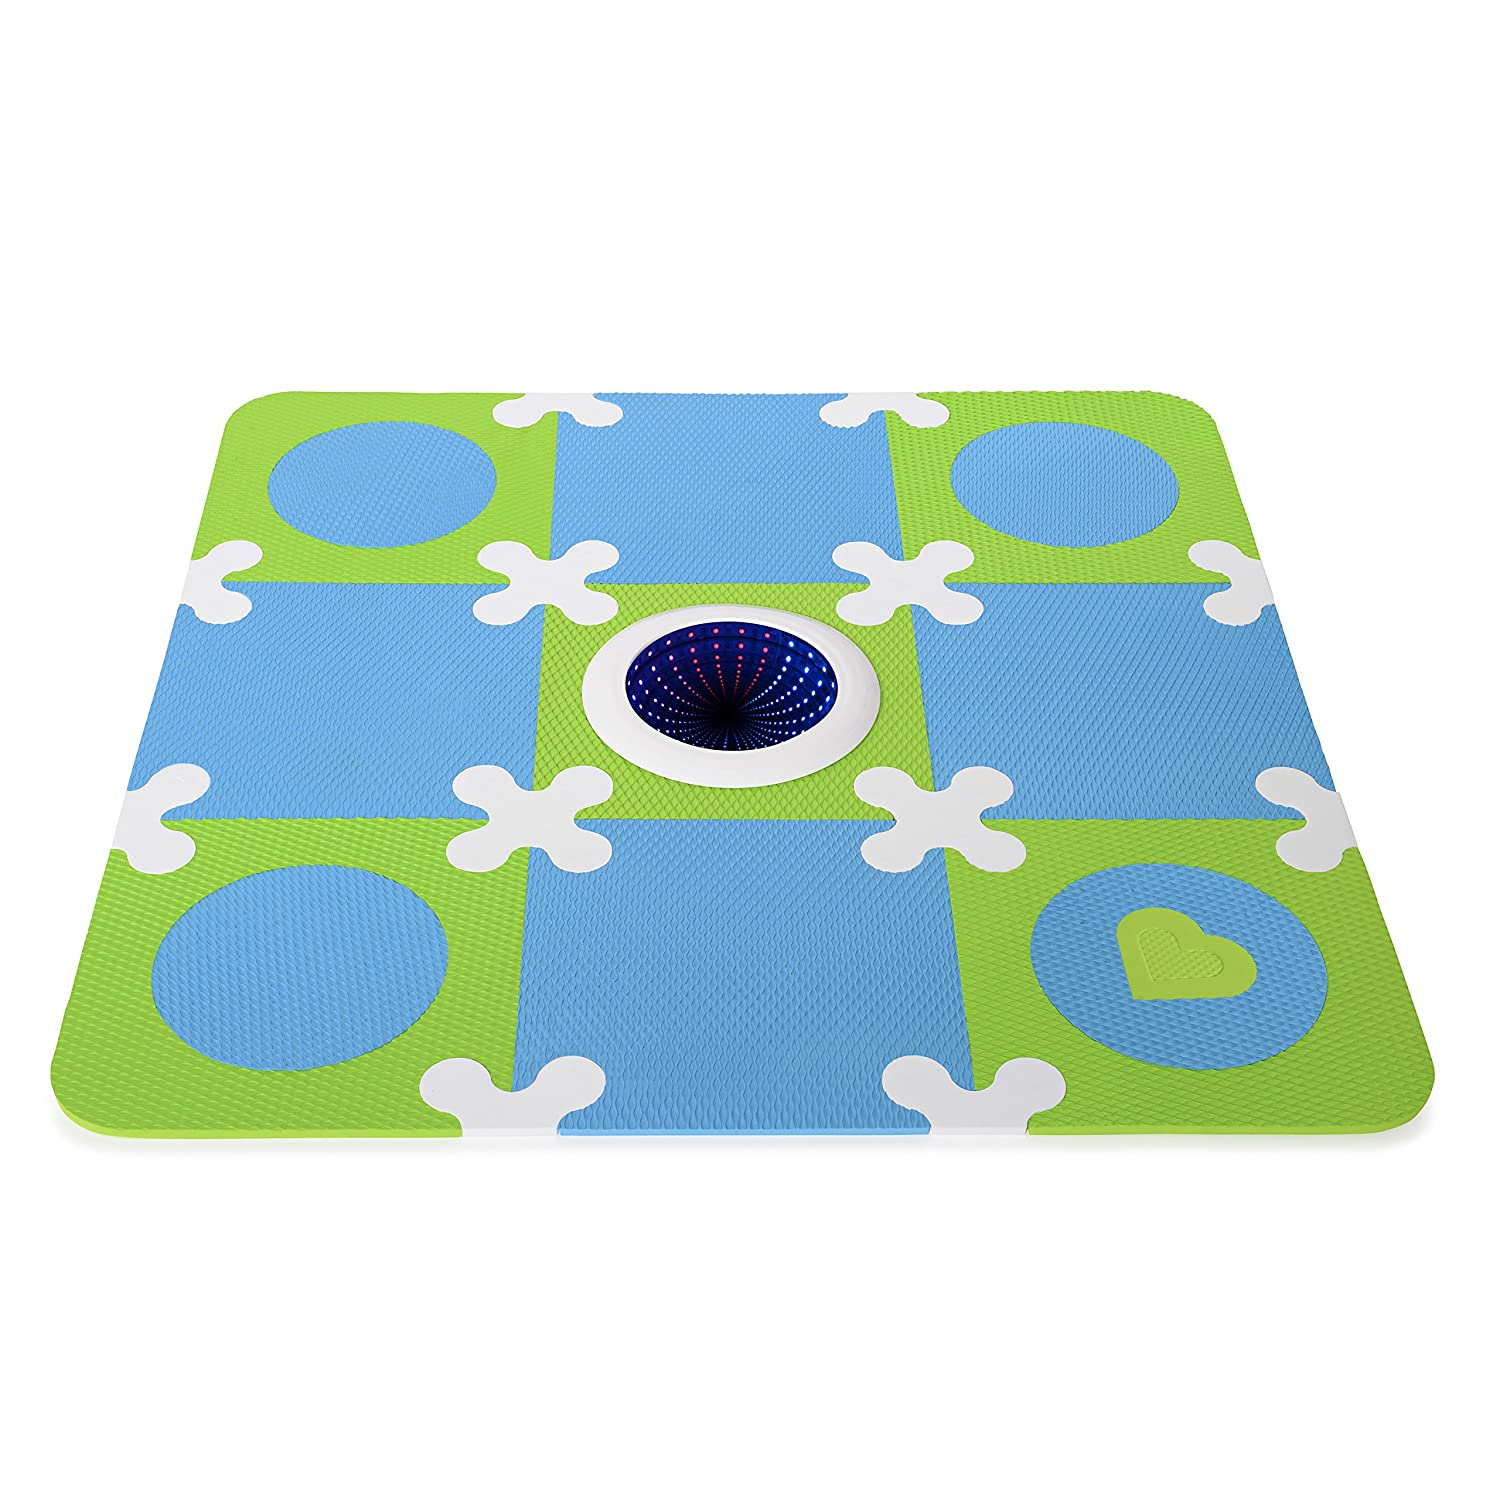 Munchkin Galaxy Light Up Foam Playmat, Blue Green